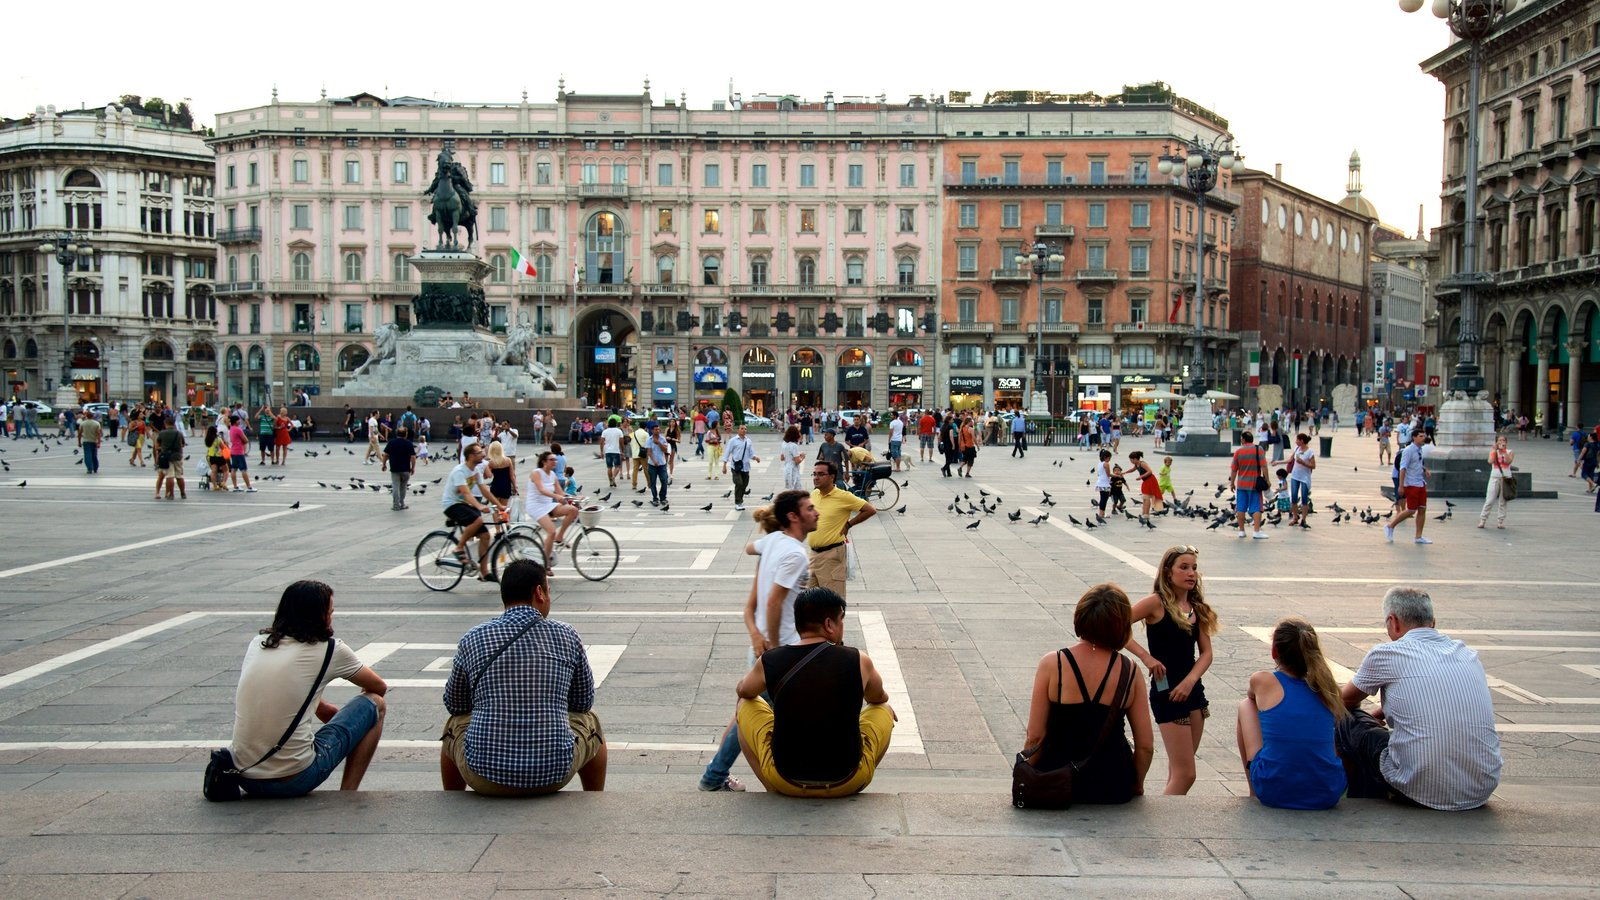 Milan showing street scenes, a city and a square or plaza